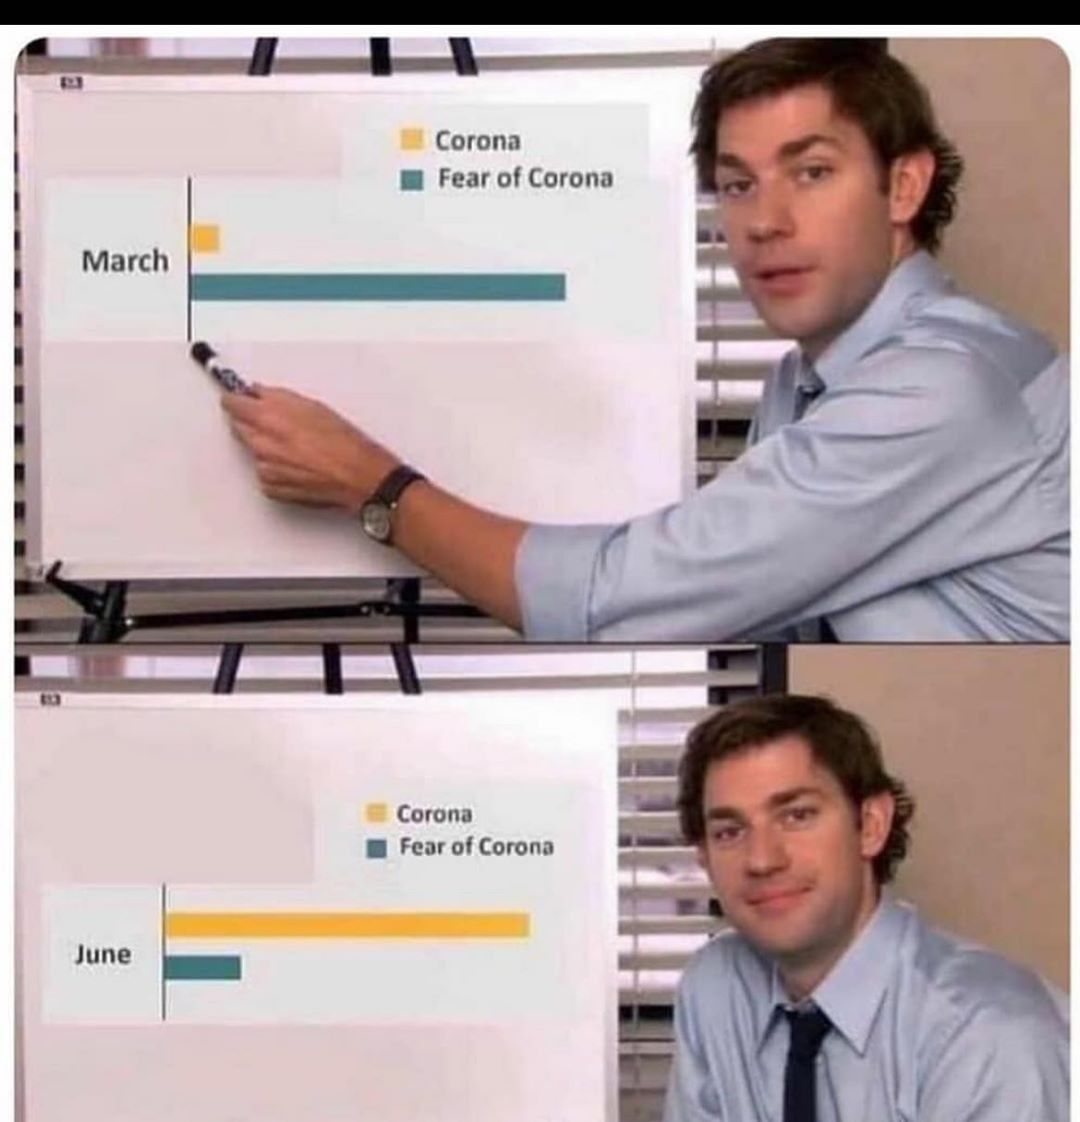 Pin By Savy 64 Blm On The Office Really Funny Memes Stupid Funny Memes Funny Relatable Memes